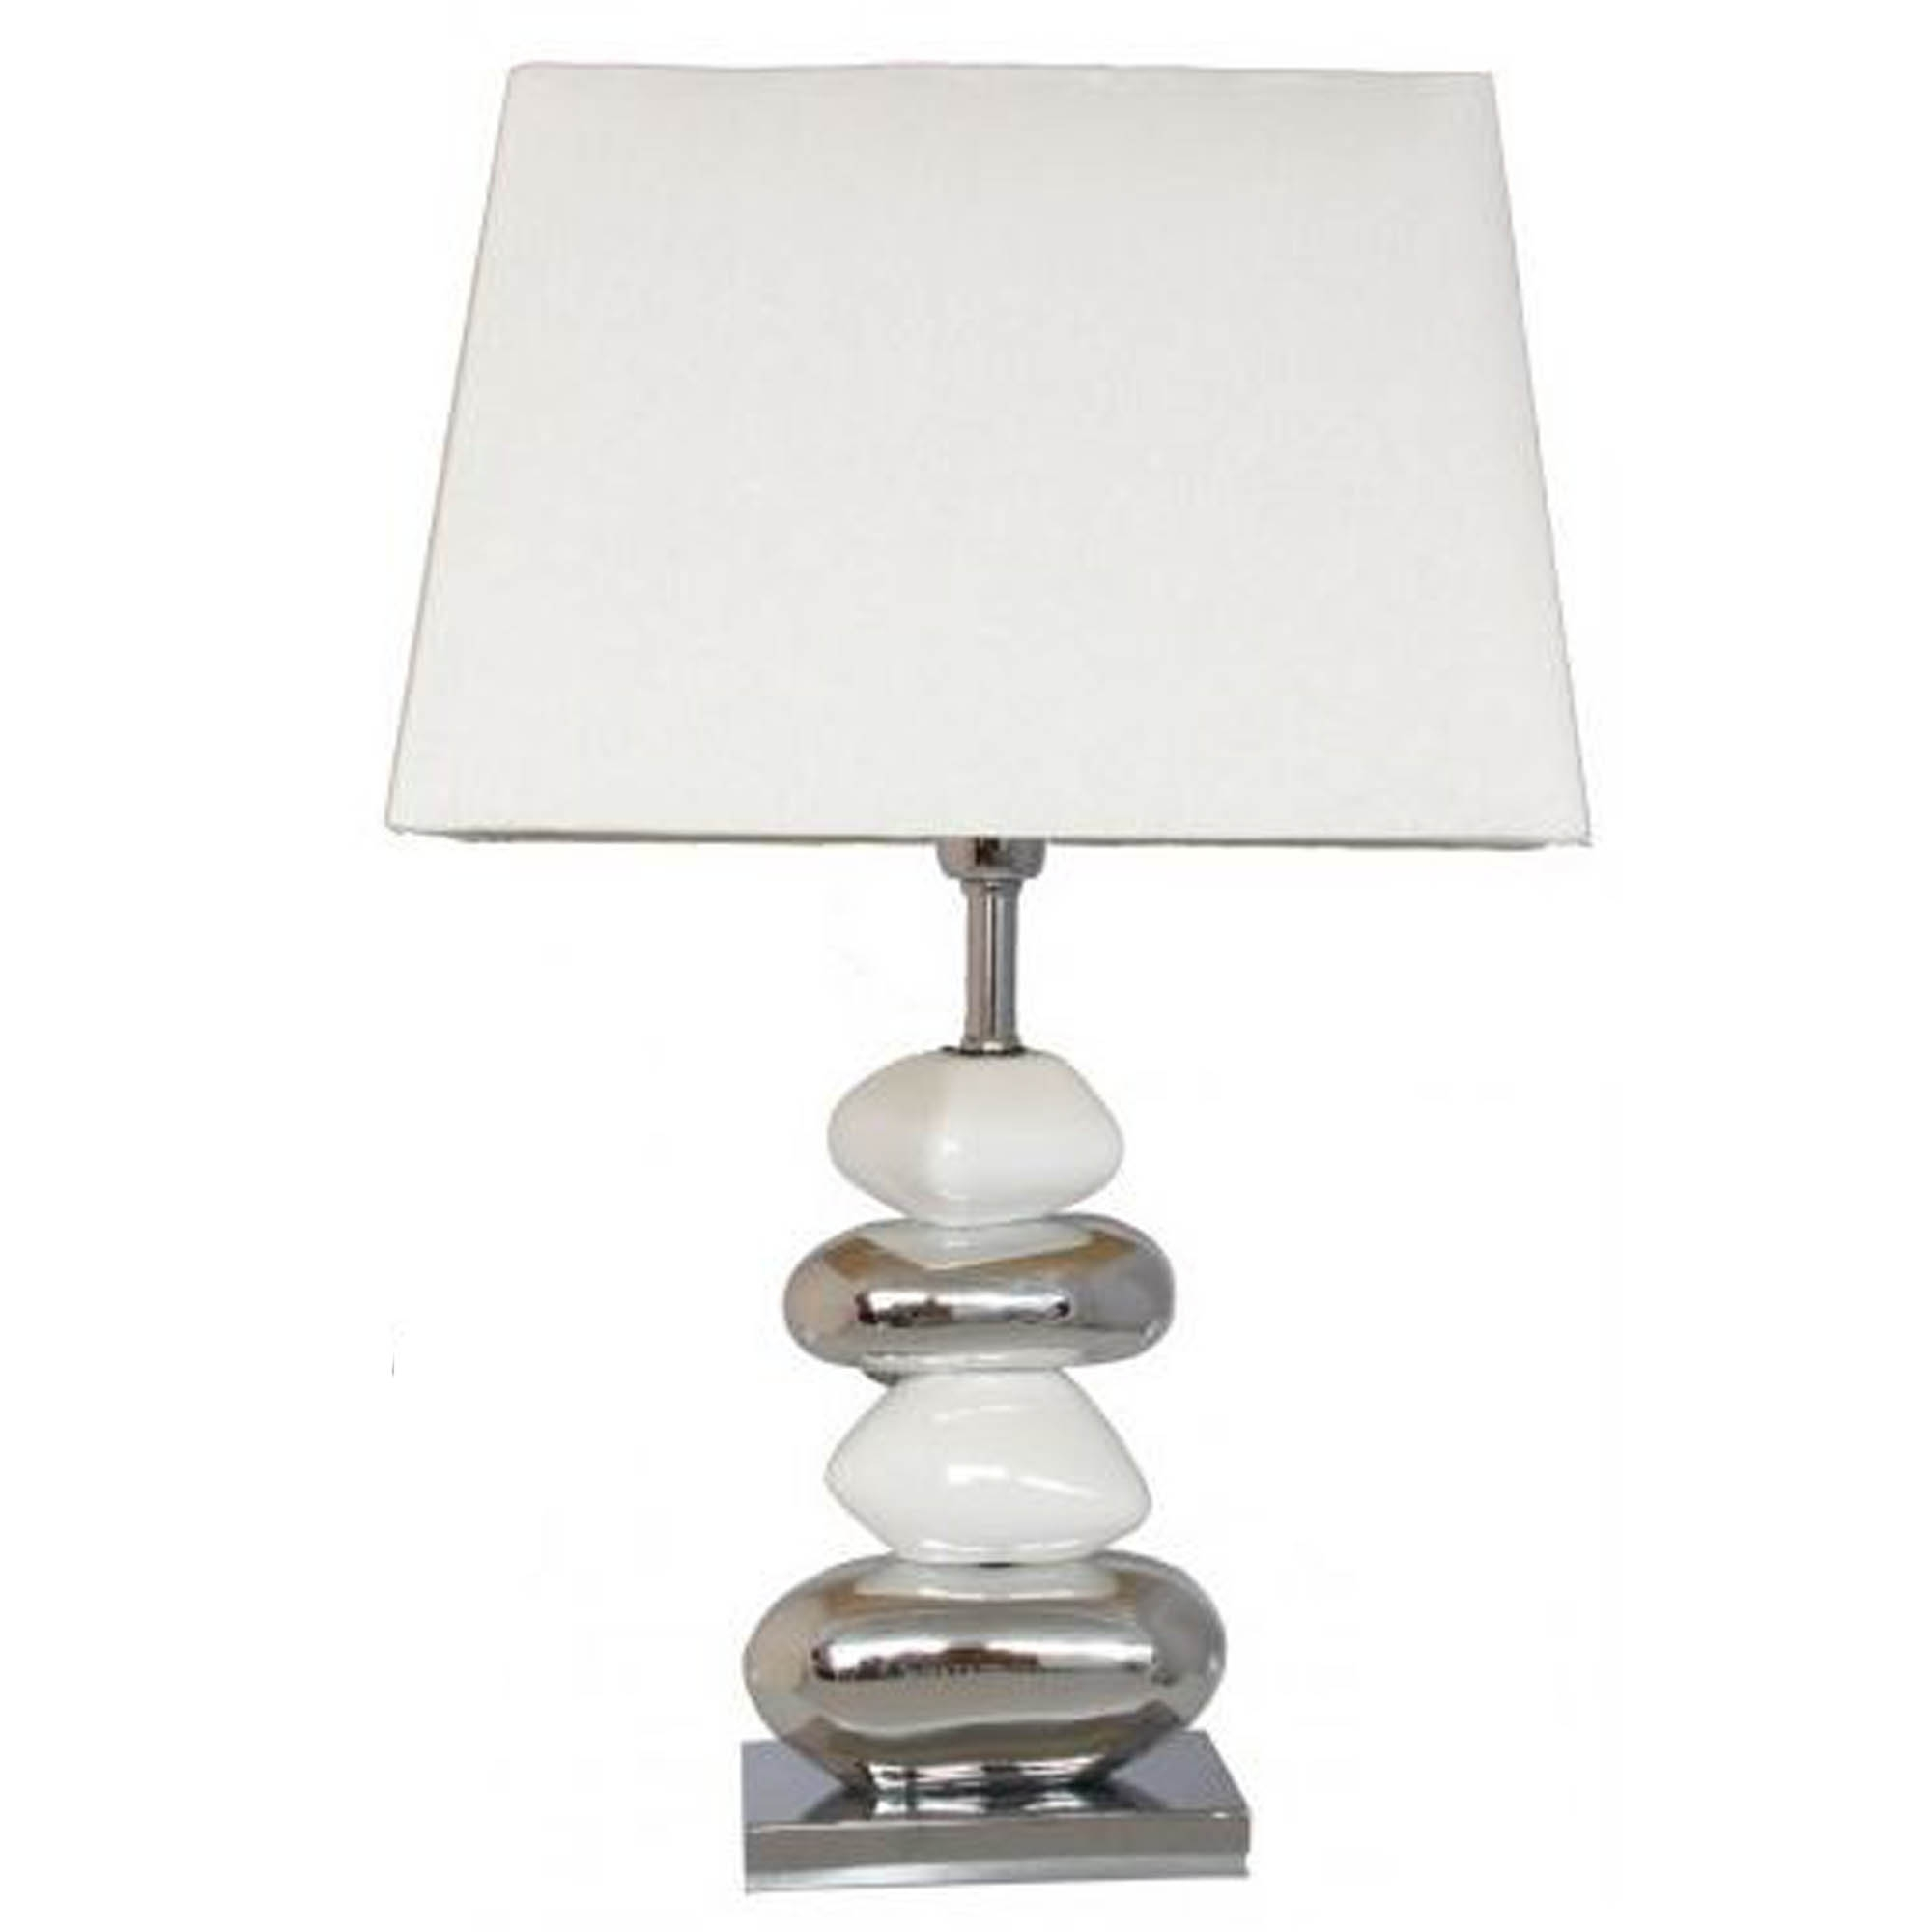 White and chrome pebble table lamp lamp homesdirect365 white and chrome pebble table lamp aloadofball Choice Image